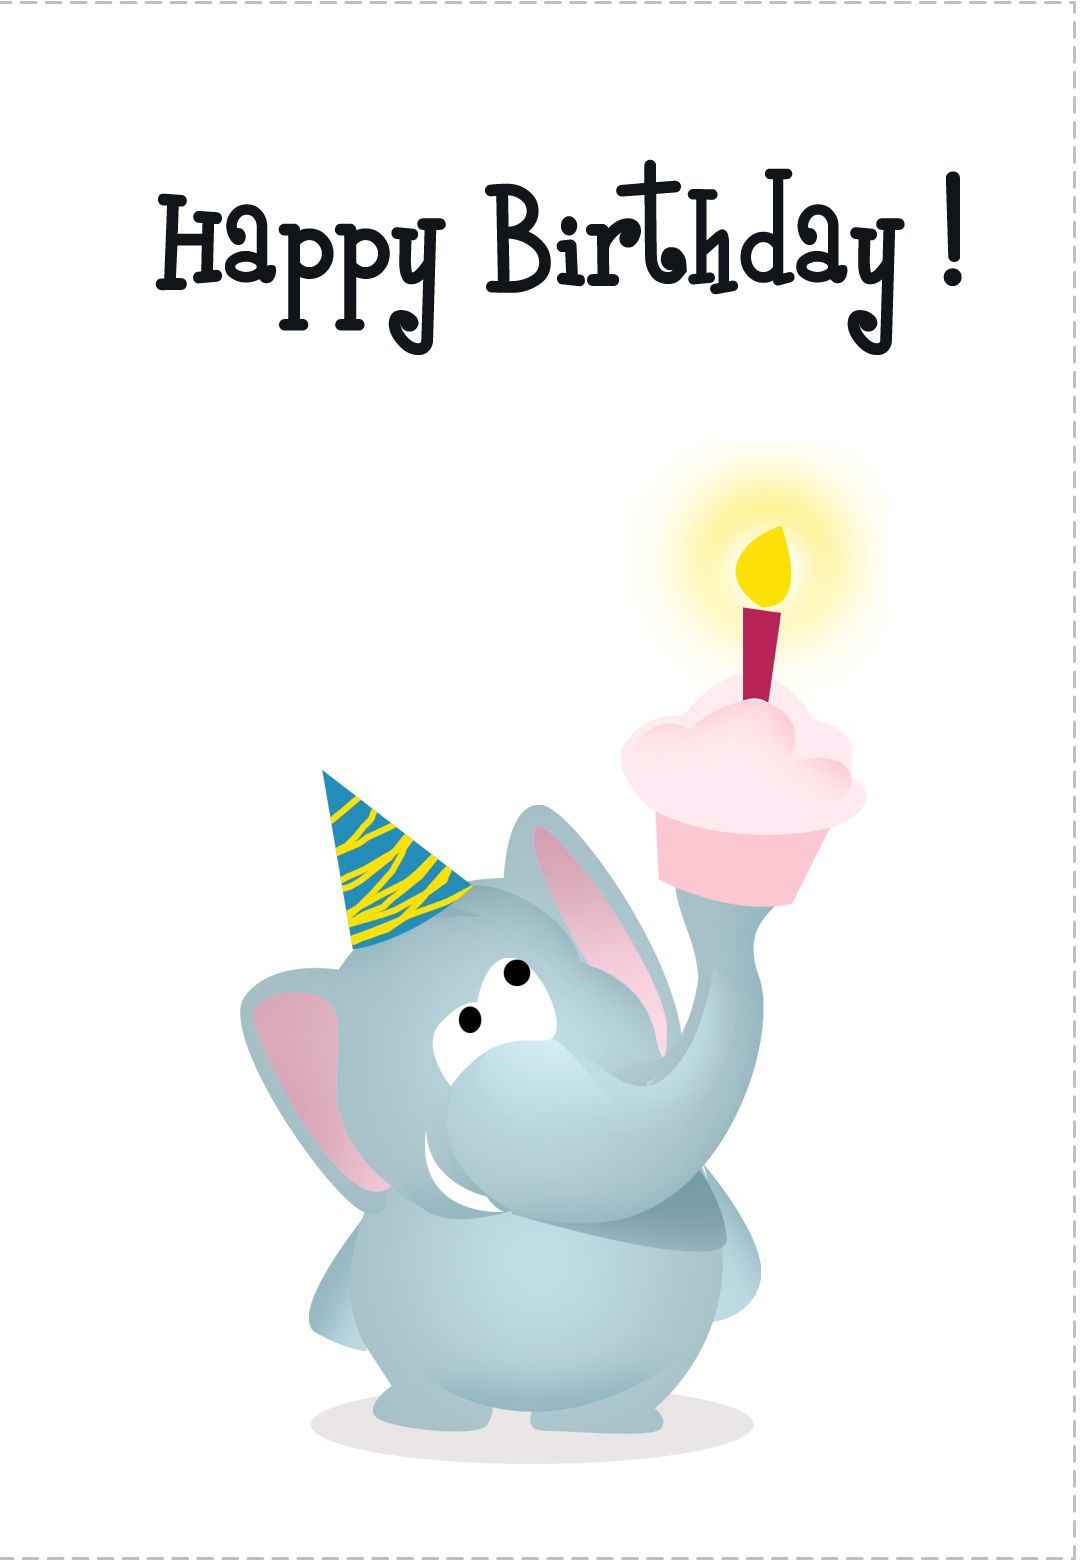 Free Printable Greeting Cards Of All Kinds. With Matching Printable - Free Printable Birthday Cards For Boys